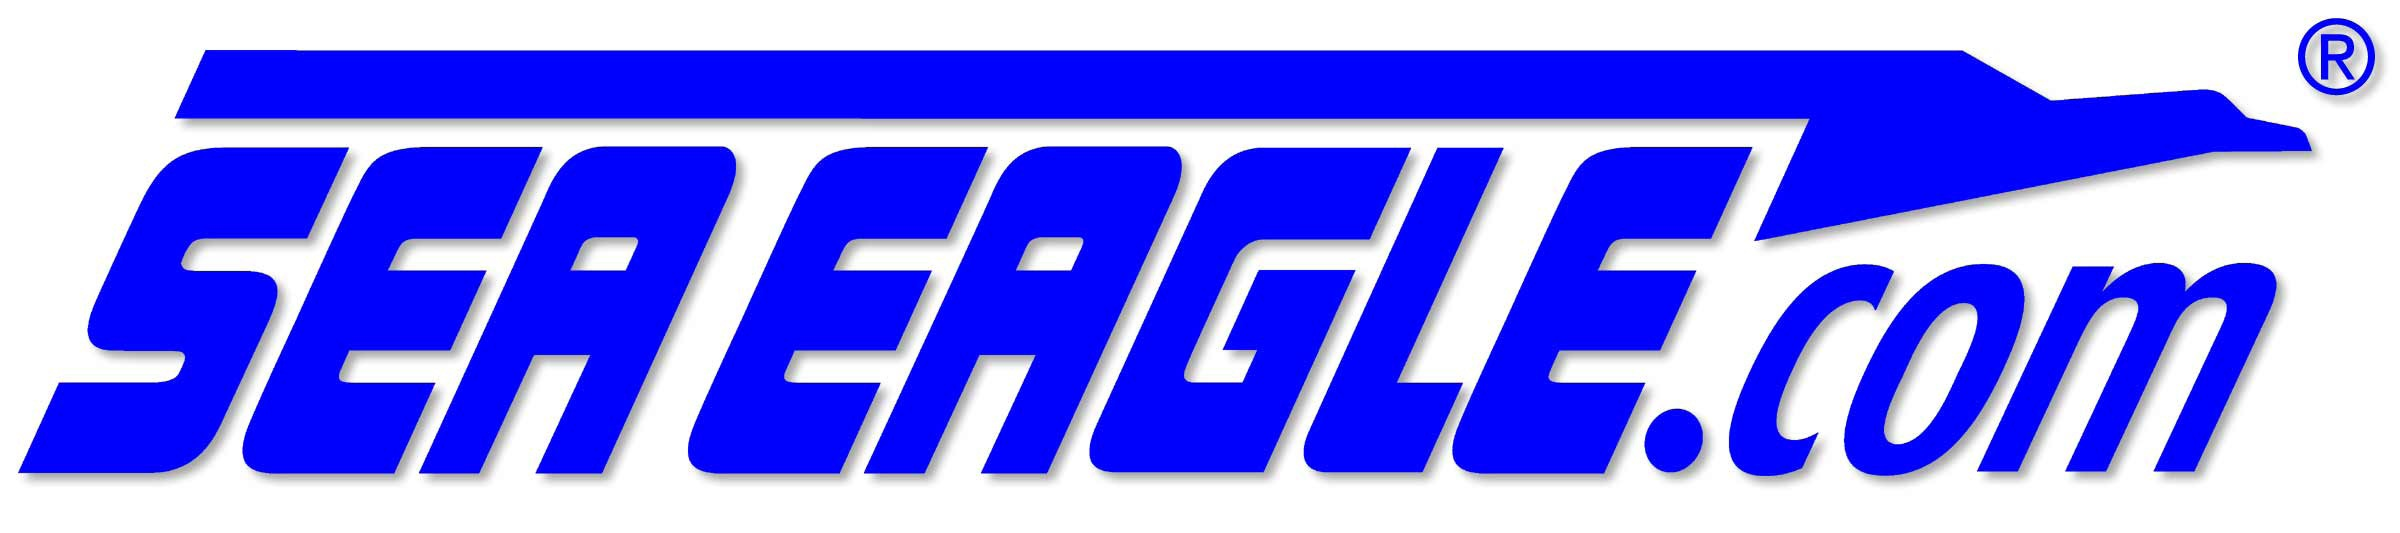 Sea Eagle Logo